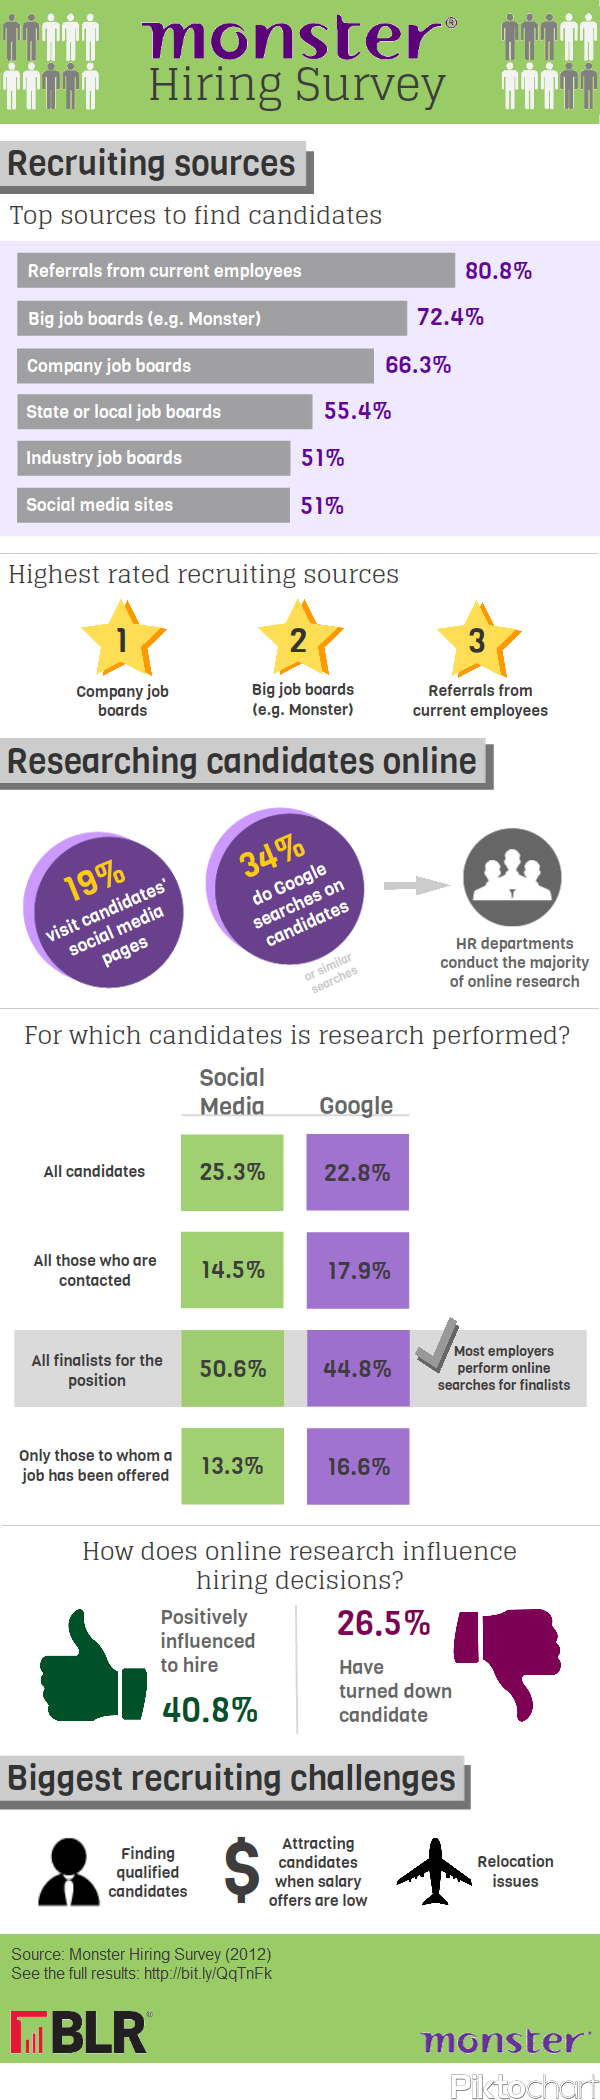 Most effective recruitment methods in 2012